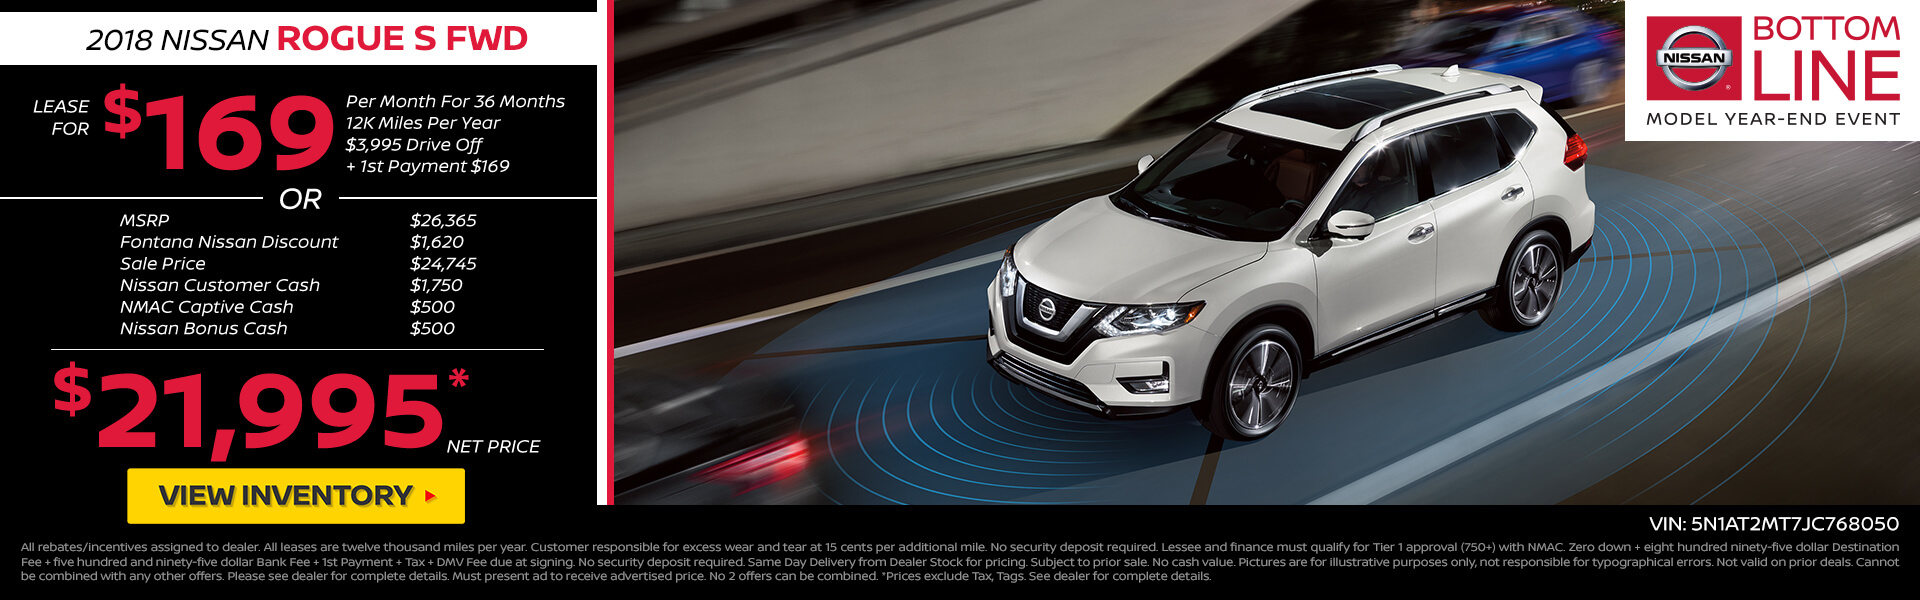 Nissan Rogue $169 Lease or $22,995 Purchase